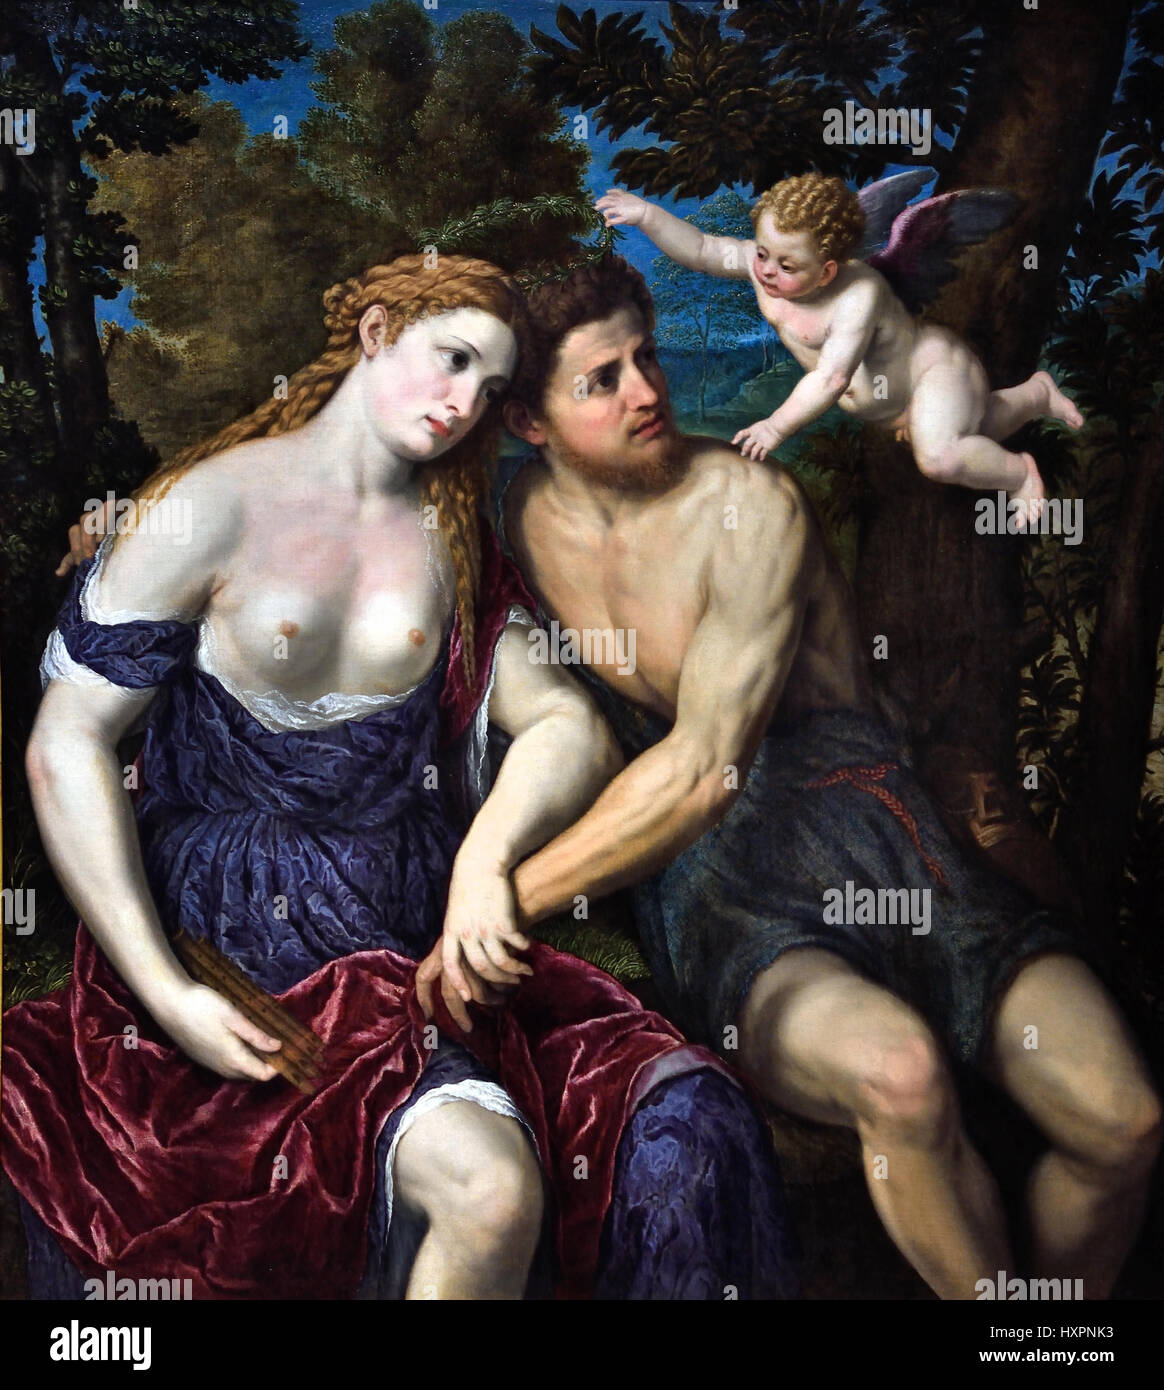 l A Pair of Lovers 1500 - 1571 Paris Bordone 1500 - 1571 Italy Italian ( Daphnis and Chloe ) Greek pastoral romance - Stock Image